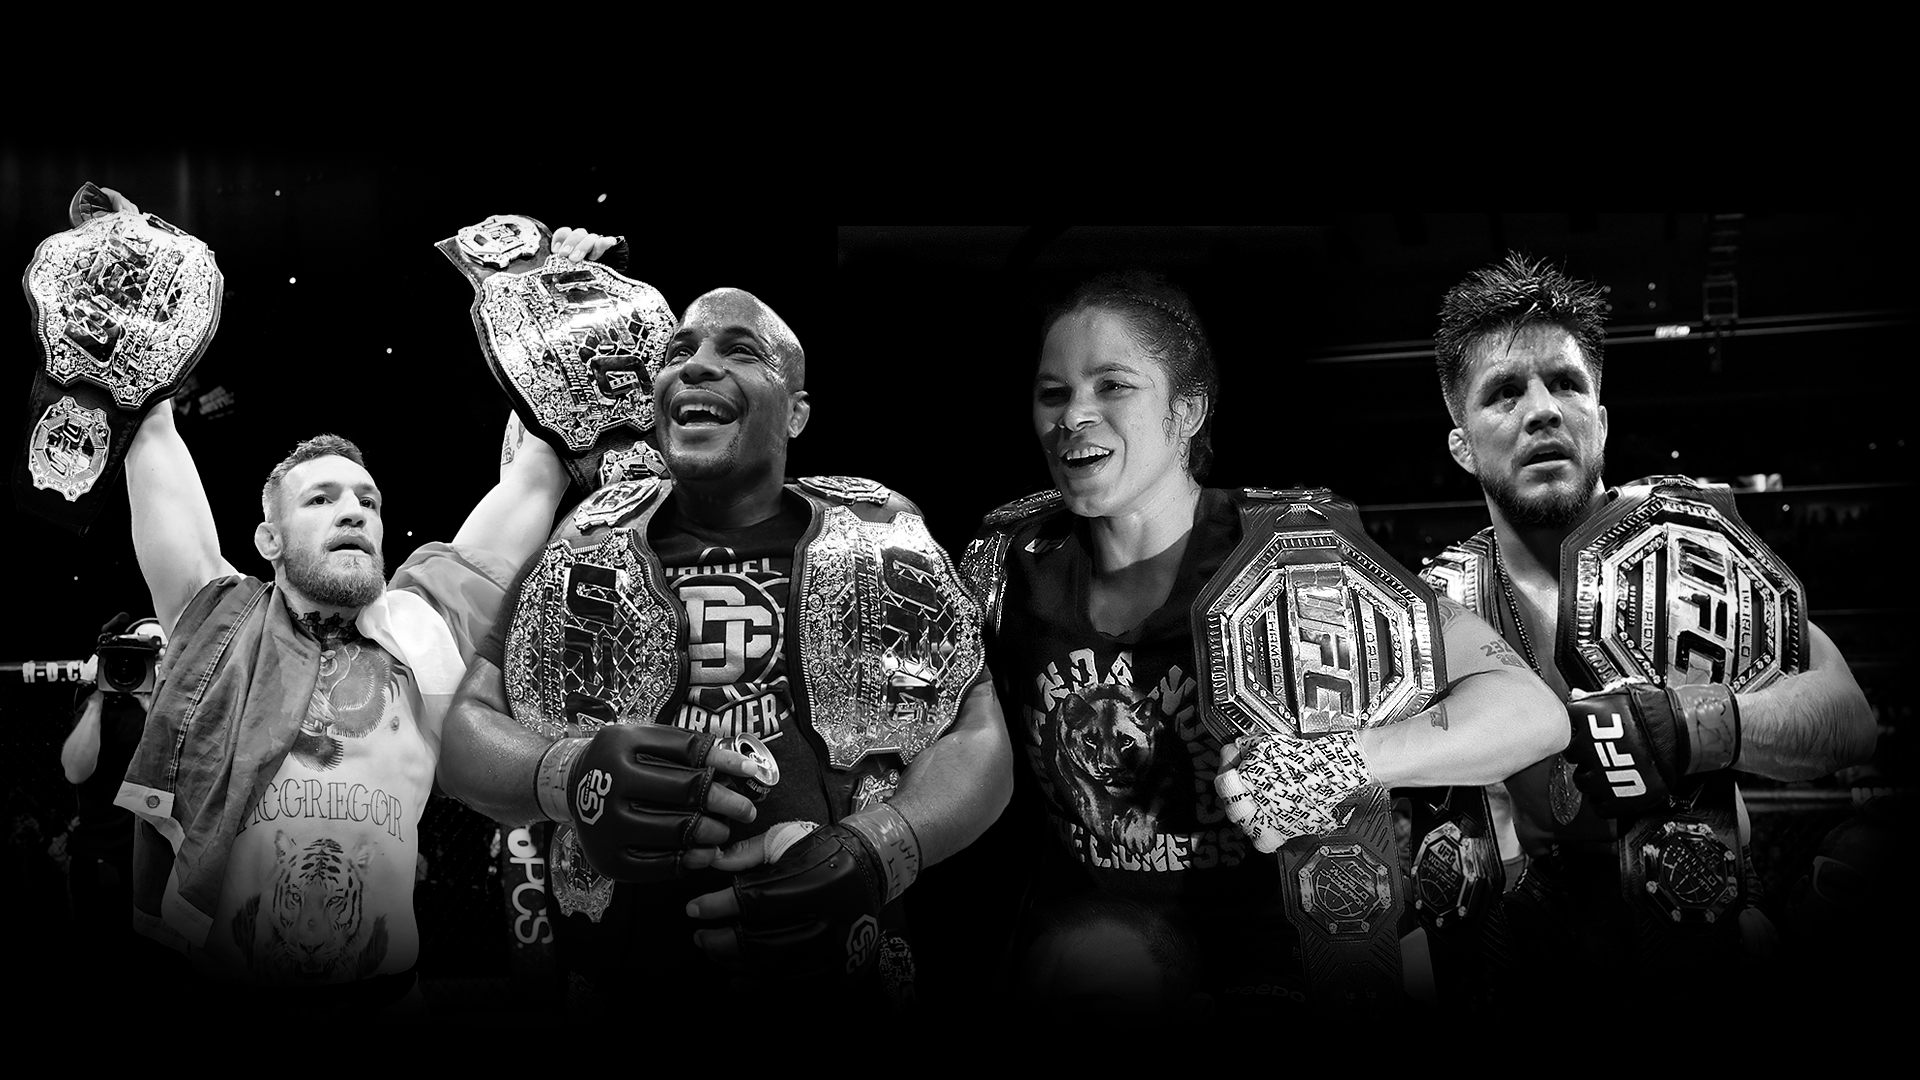 History of UFC Champ Champs featuring Randy Couture, BJ Penn, Georges St-Pierre, Conor McGregor, Daniel Cormier, Amanda Nunes and Henry Cejudo.